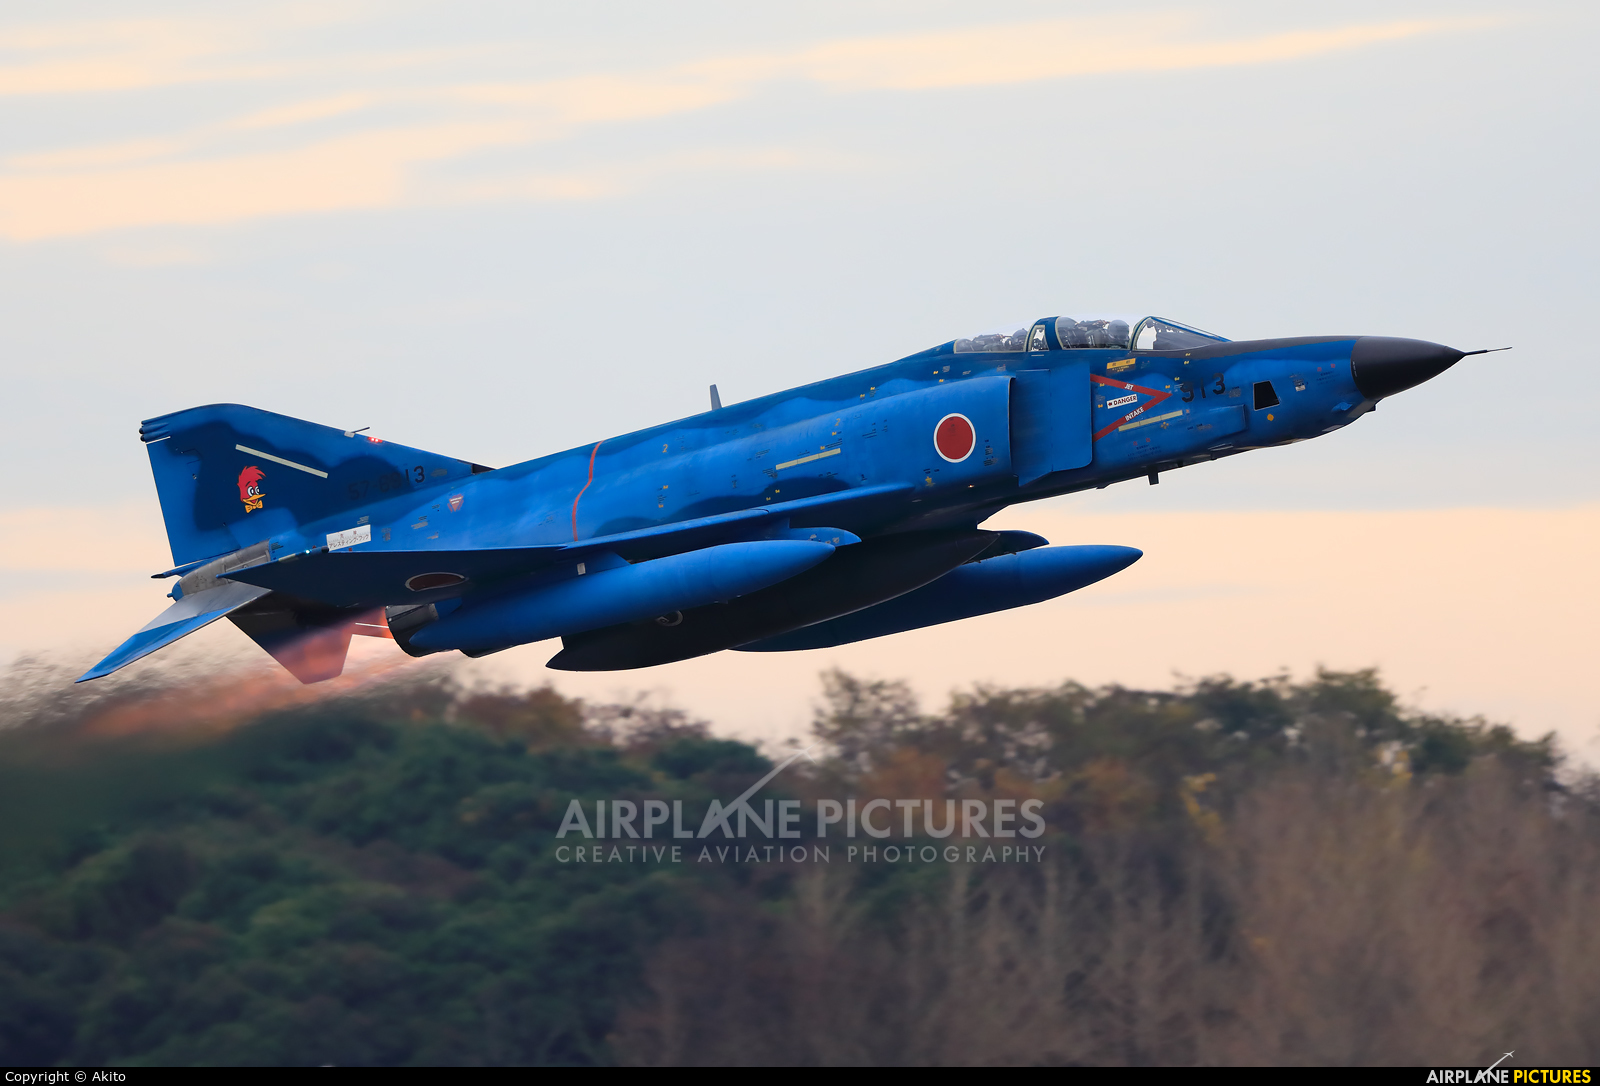 Japan - Air Self Defence Force 57-6913 aircraft at Ibaraki - Hyakuri AB